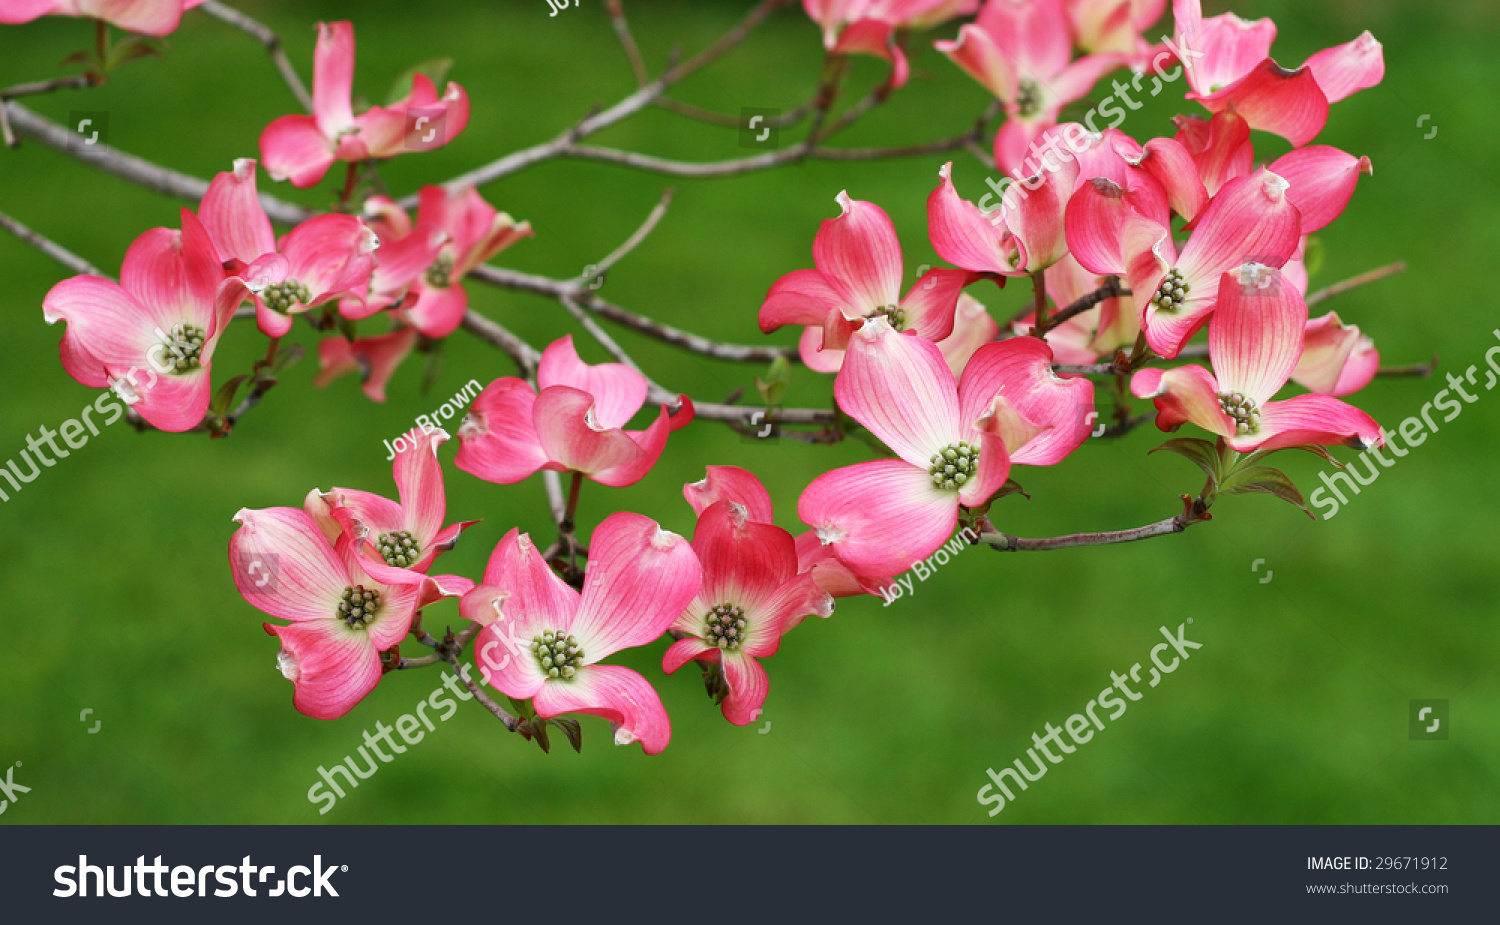 Pink dogwood tree flowers stock photo edit now 29671912 shutterstock pink dogwood tree flowers mightylinksfo